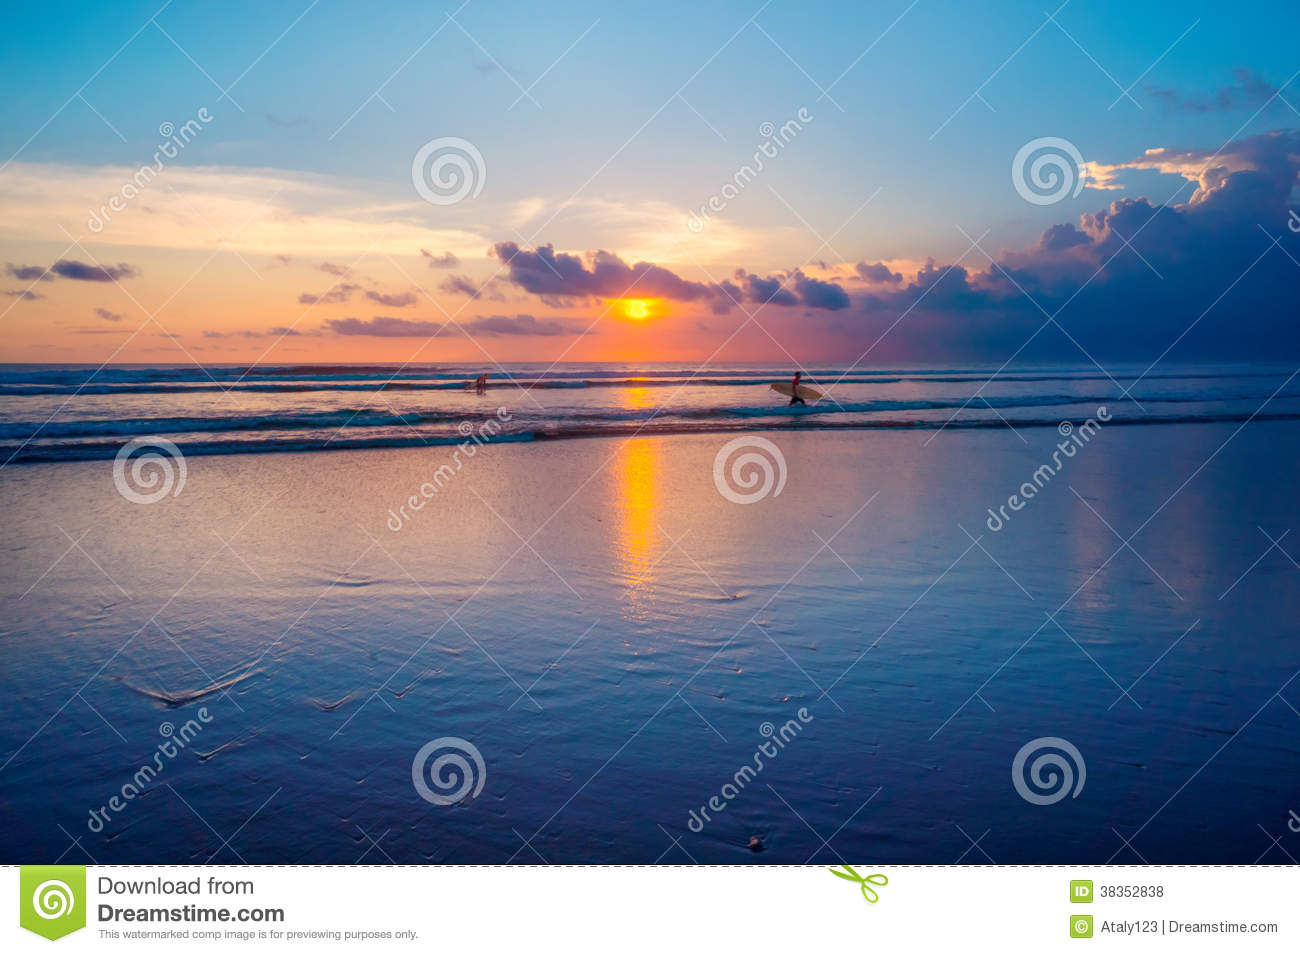 a report on bali an island in the indian ocean Fishing boats in the indian ocean, tropical island bali sanur beach  please review our terms before submitting your report if this is the case, .